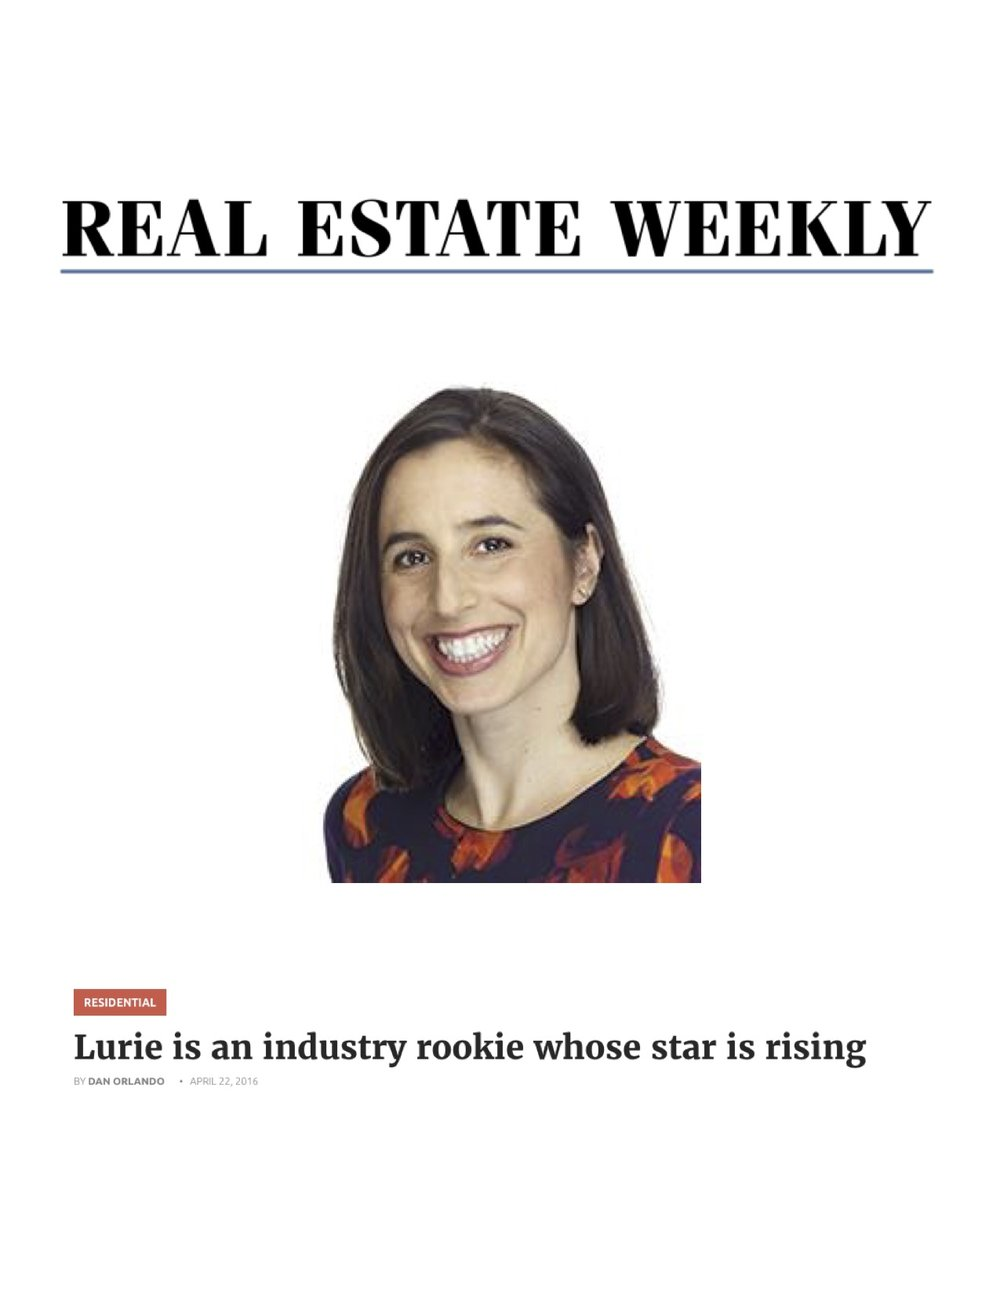 Real Estate Weekly .jpg